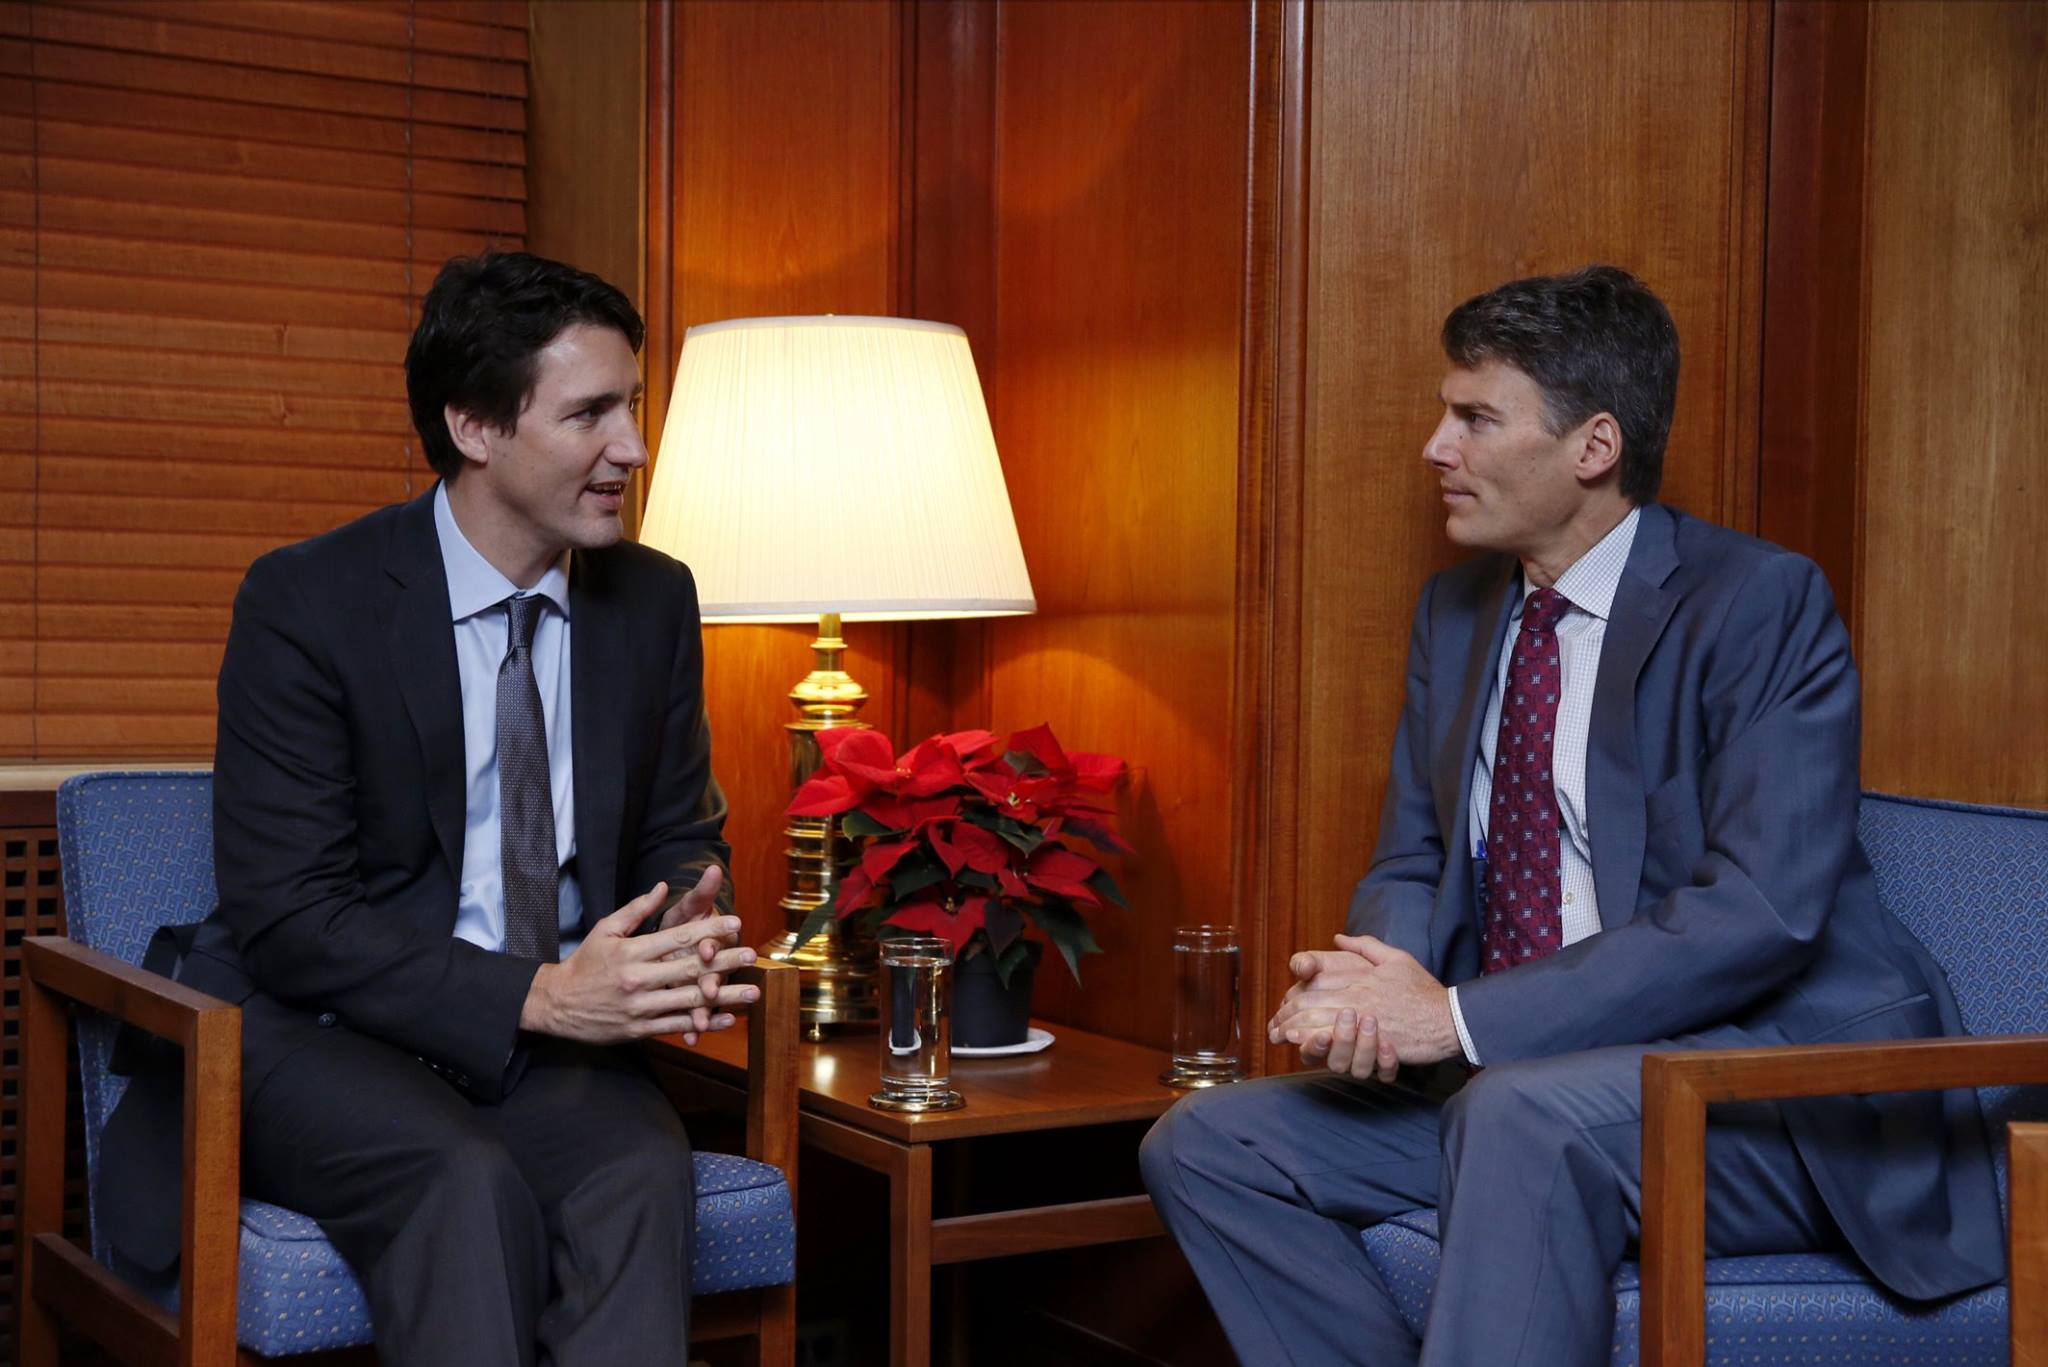 Justin Trudeau meets with Mayor Gregor Robertson in Vancouver (Photo from the official Facebook page of PM Trudeau)